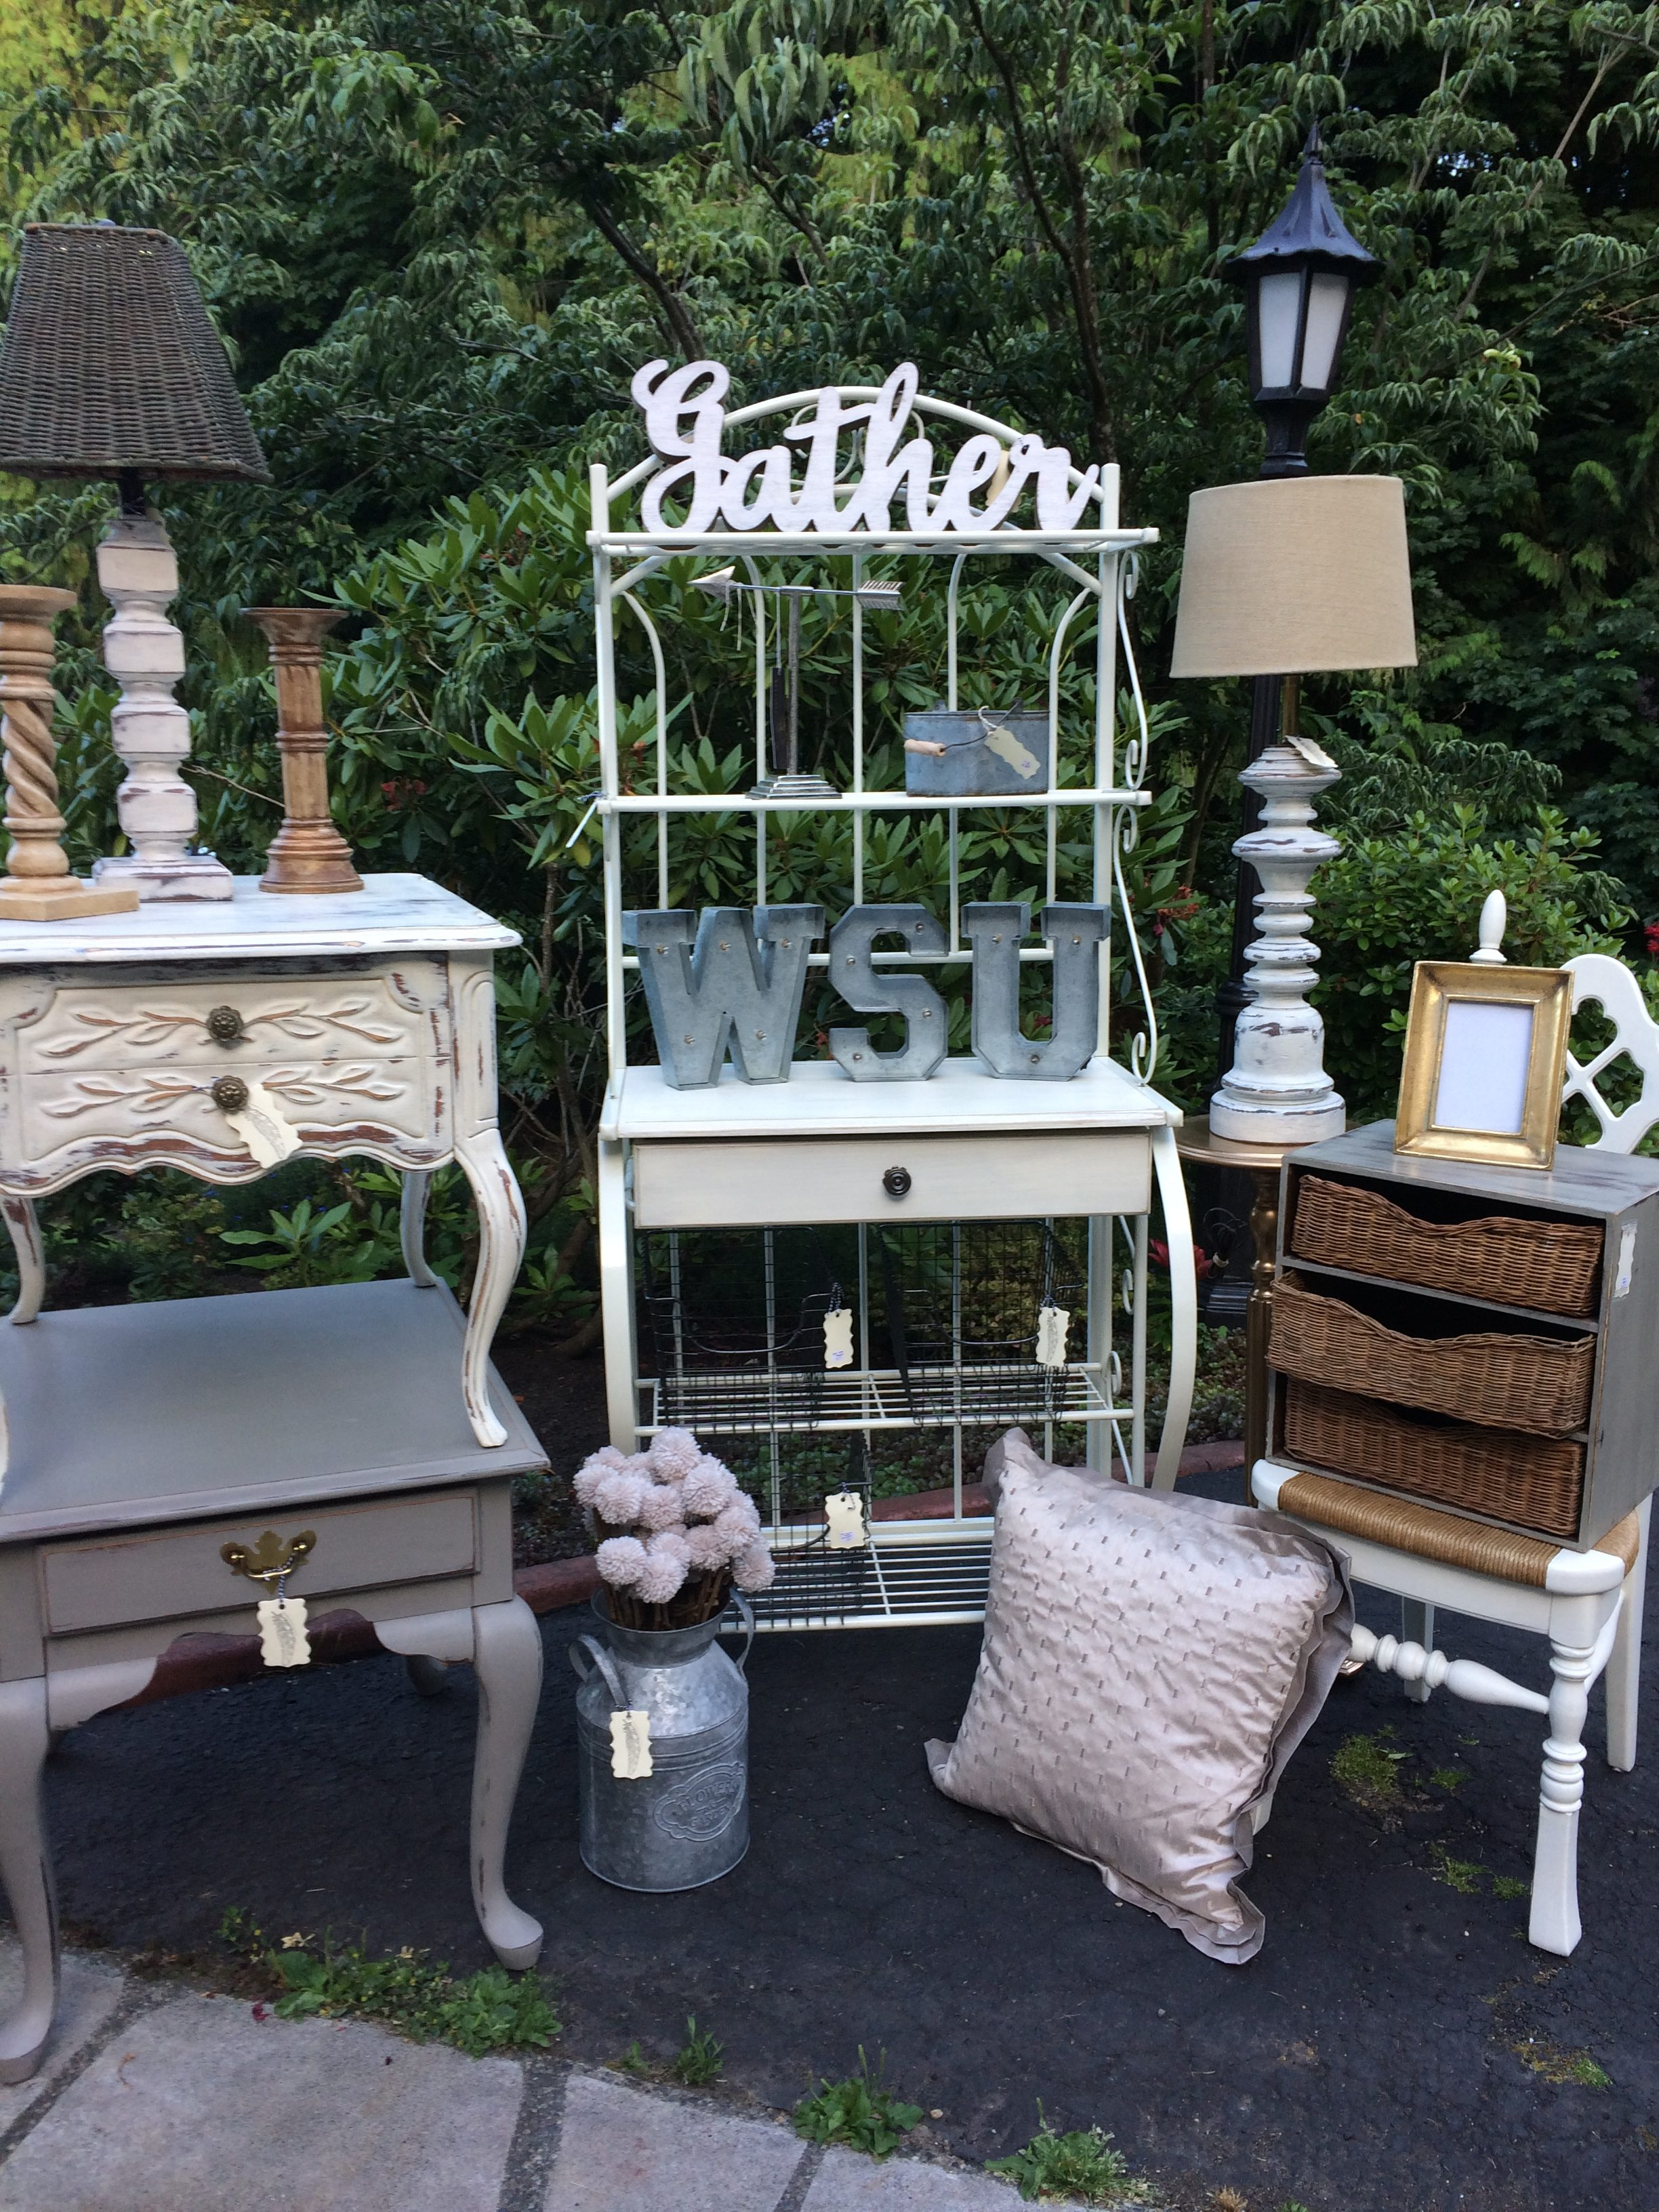 Fresh Ideas Is Hosting Itu0027s 3rd Annual Momu0027s Weekend Home Decor Sale! We  Are Gearing Up With Furniture, Wall Decor, Lighting Fixtures, And Much More!